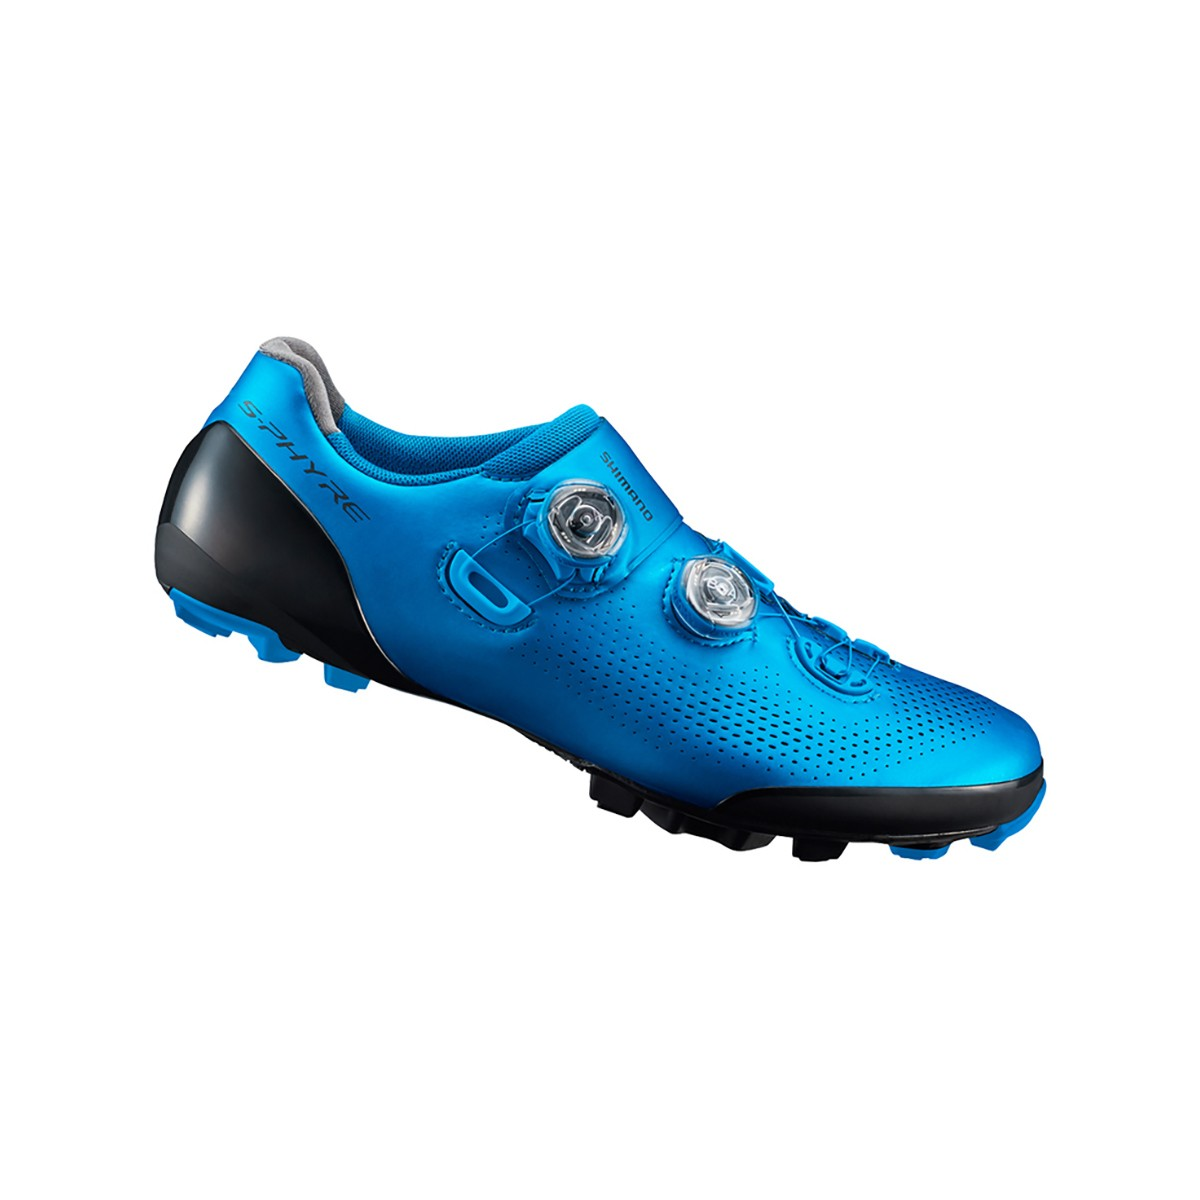 SHIMANO S-PHYRE XC9 SHOES BLUE